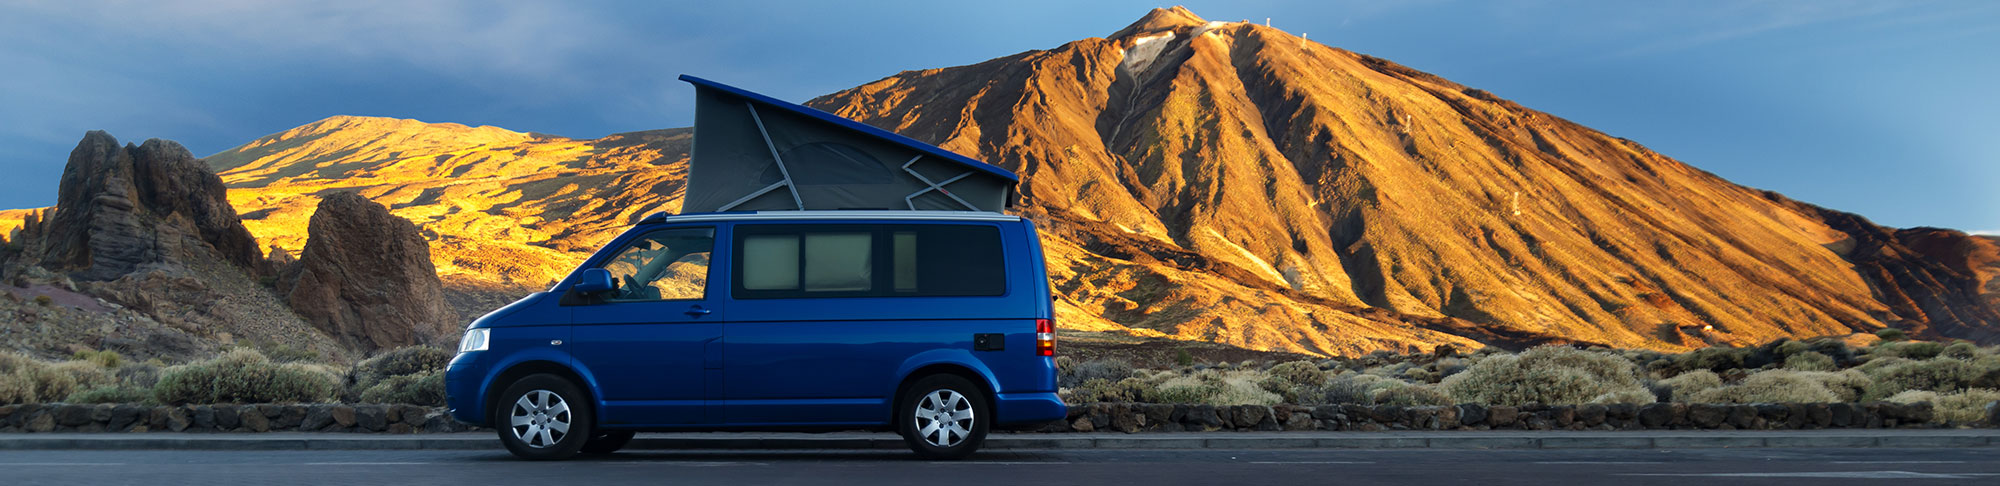 blue campervan head open parked on road by hill range